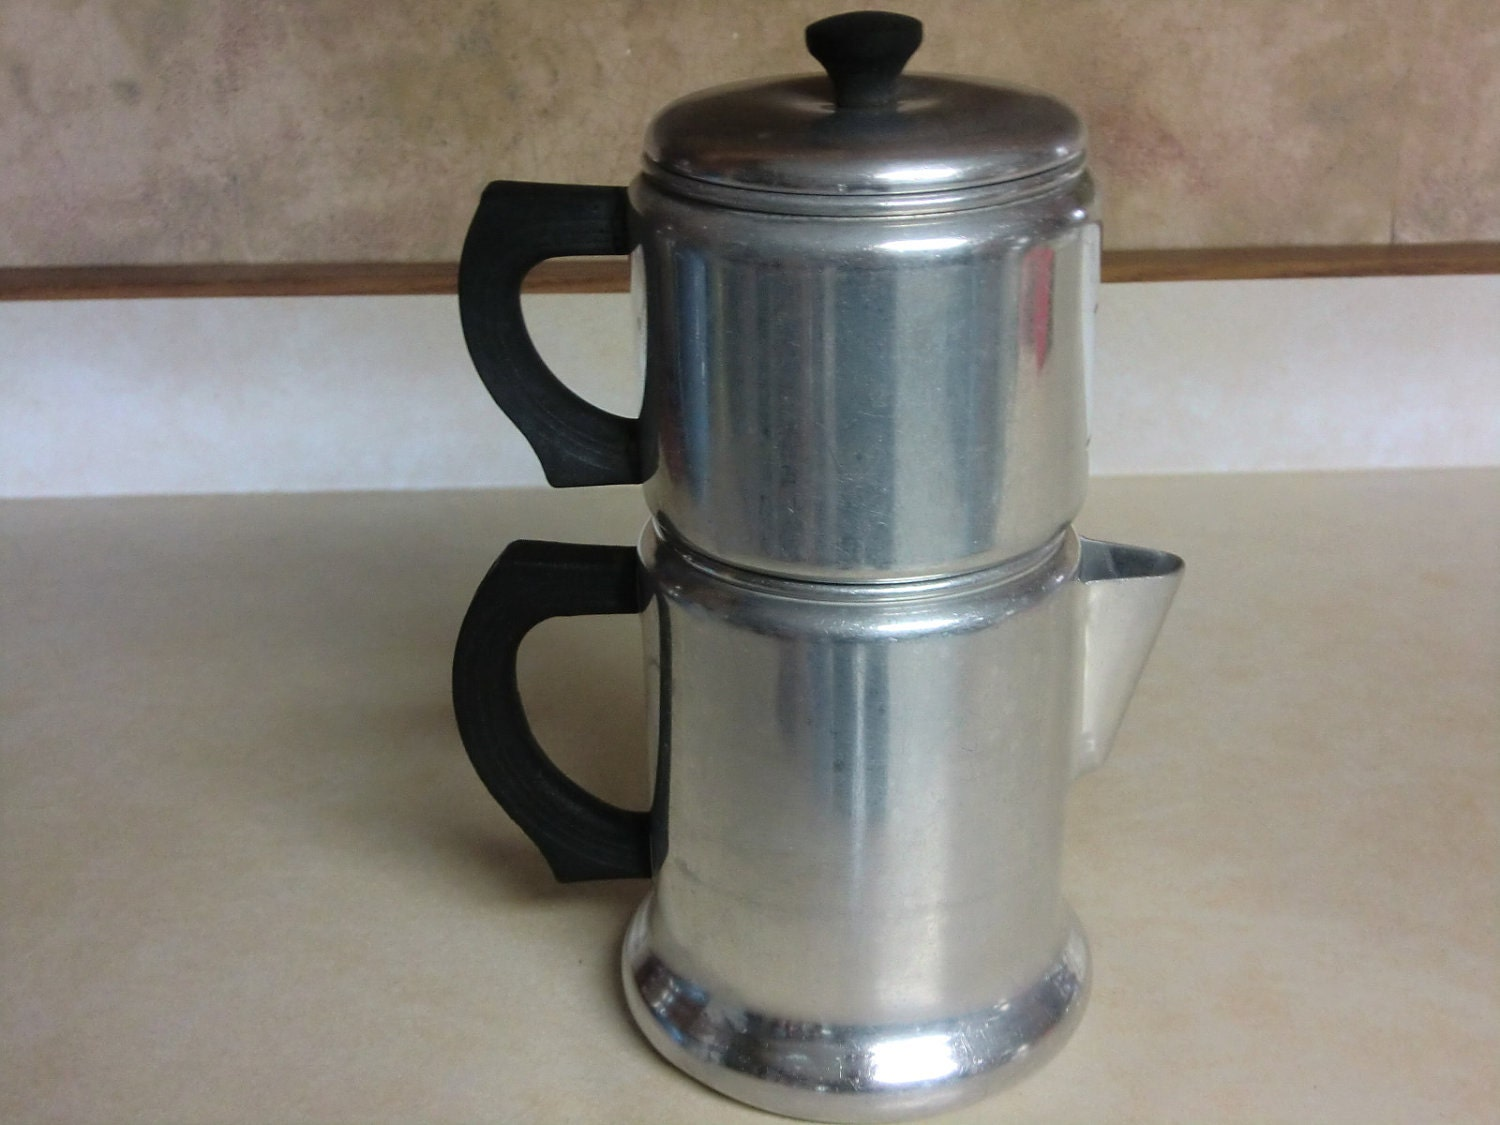 Old Drip Coffee Maker : Vintage West Bend Drip Coffee Marker by granskitchen on Etsy